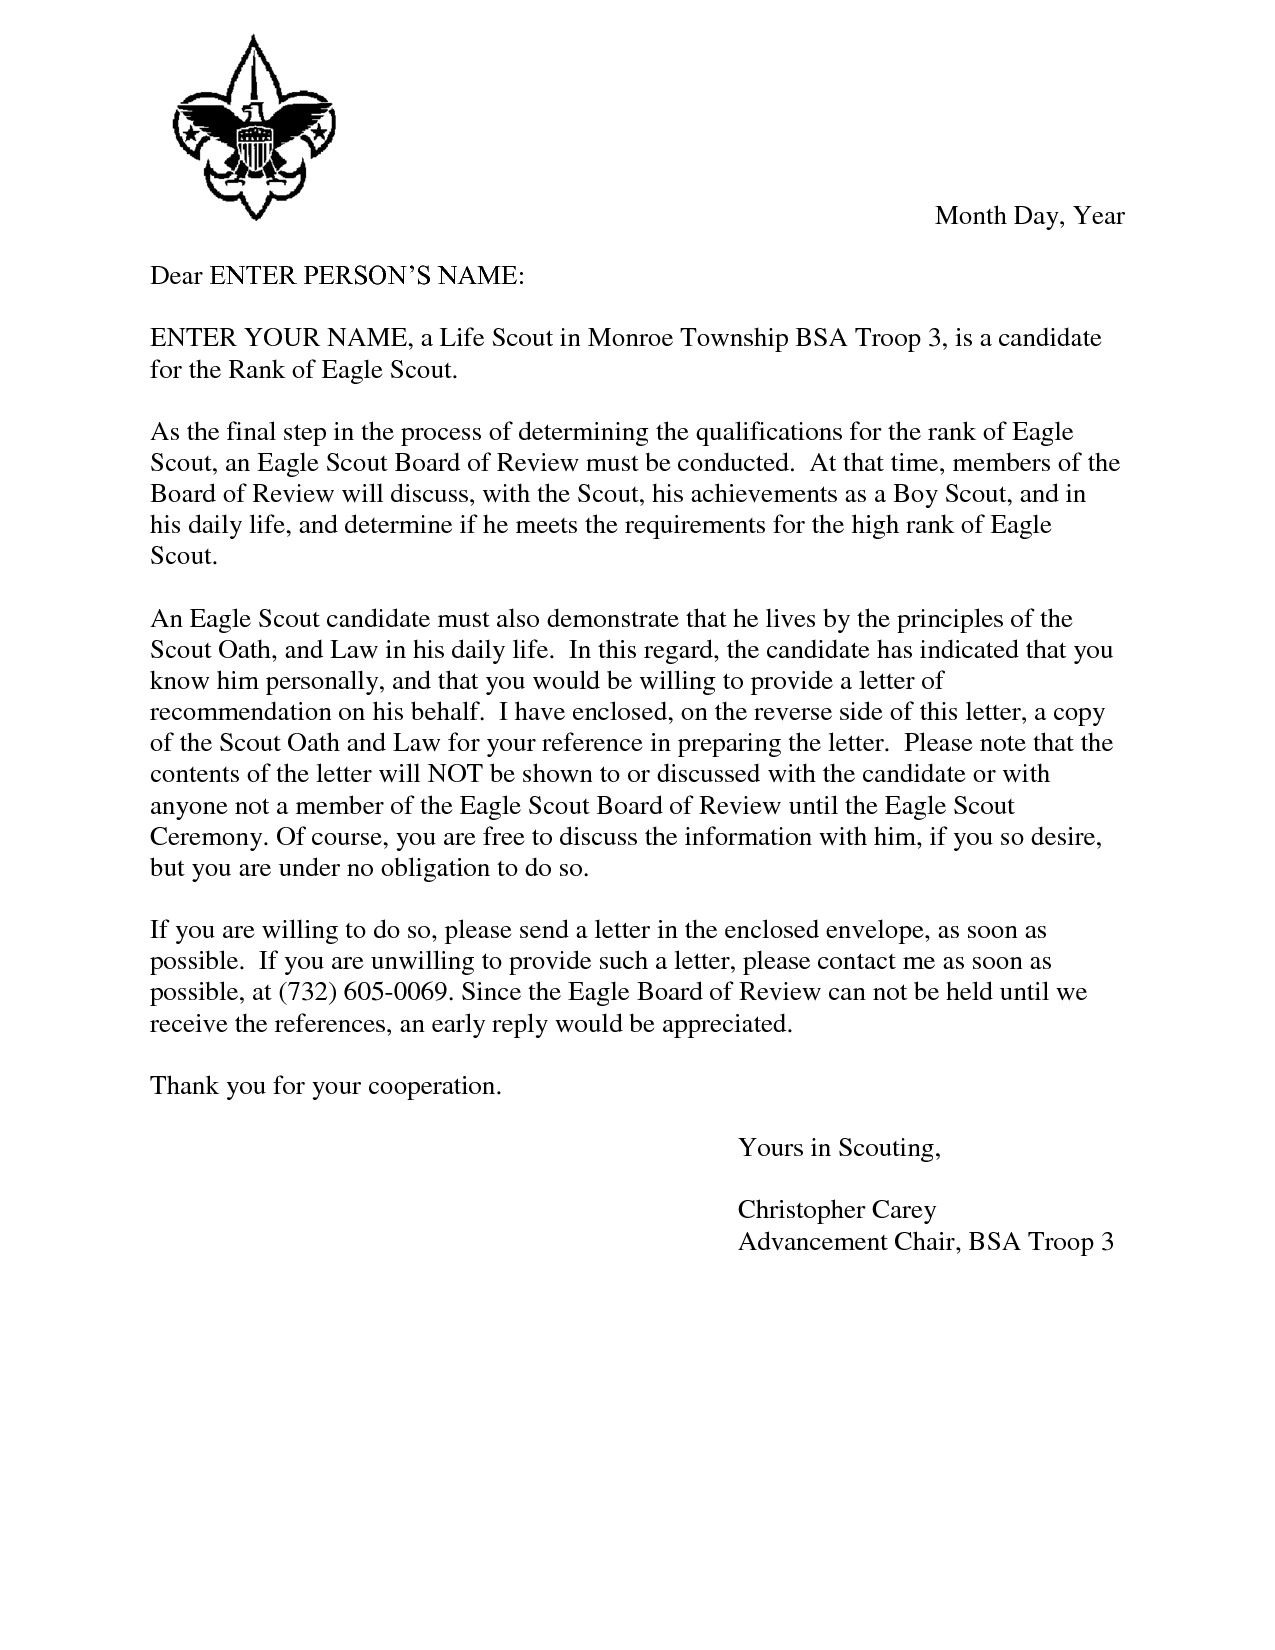 Template for A Letter Of Recommendation for A Student - Eagle Scout Reference Request Sample Letter Doc 7 by Hfr990q